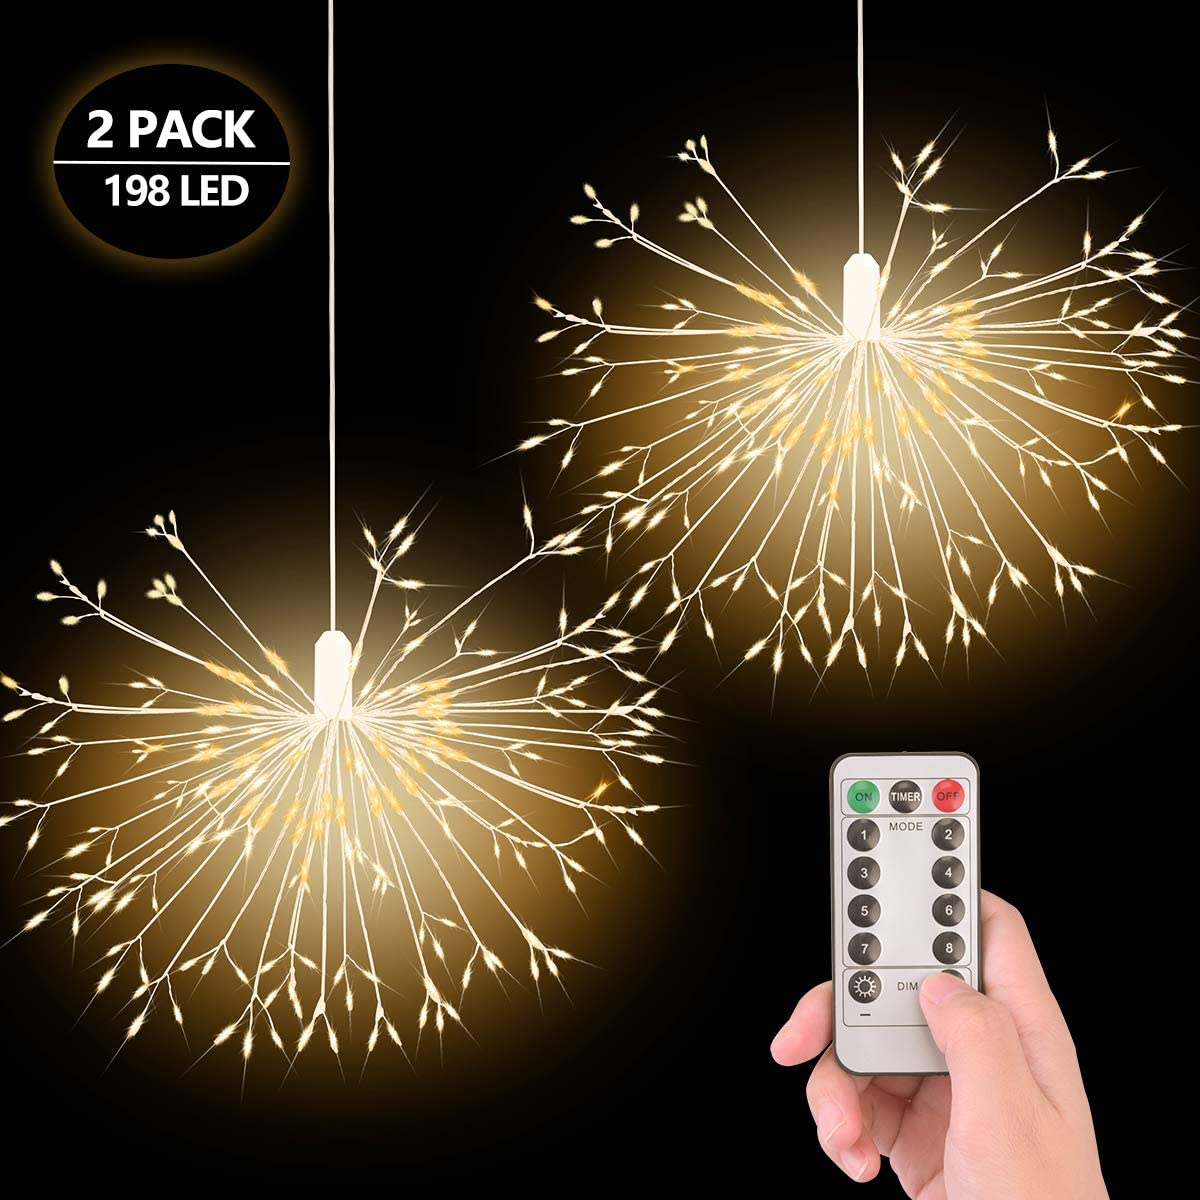 EVILTO Battery Operated String Lights 198 LED Fairy Lights Hanging Starburst Lights 8 Modes Waterproof Decorative Light for Party Bedroom 2 Pack Warm White